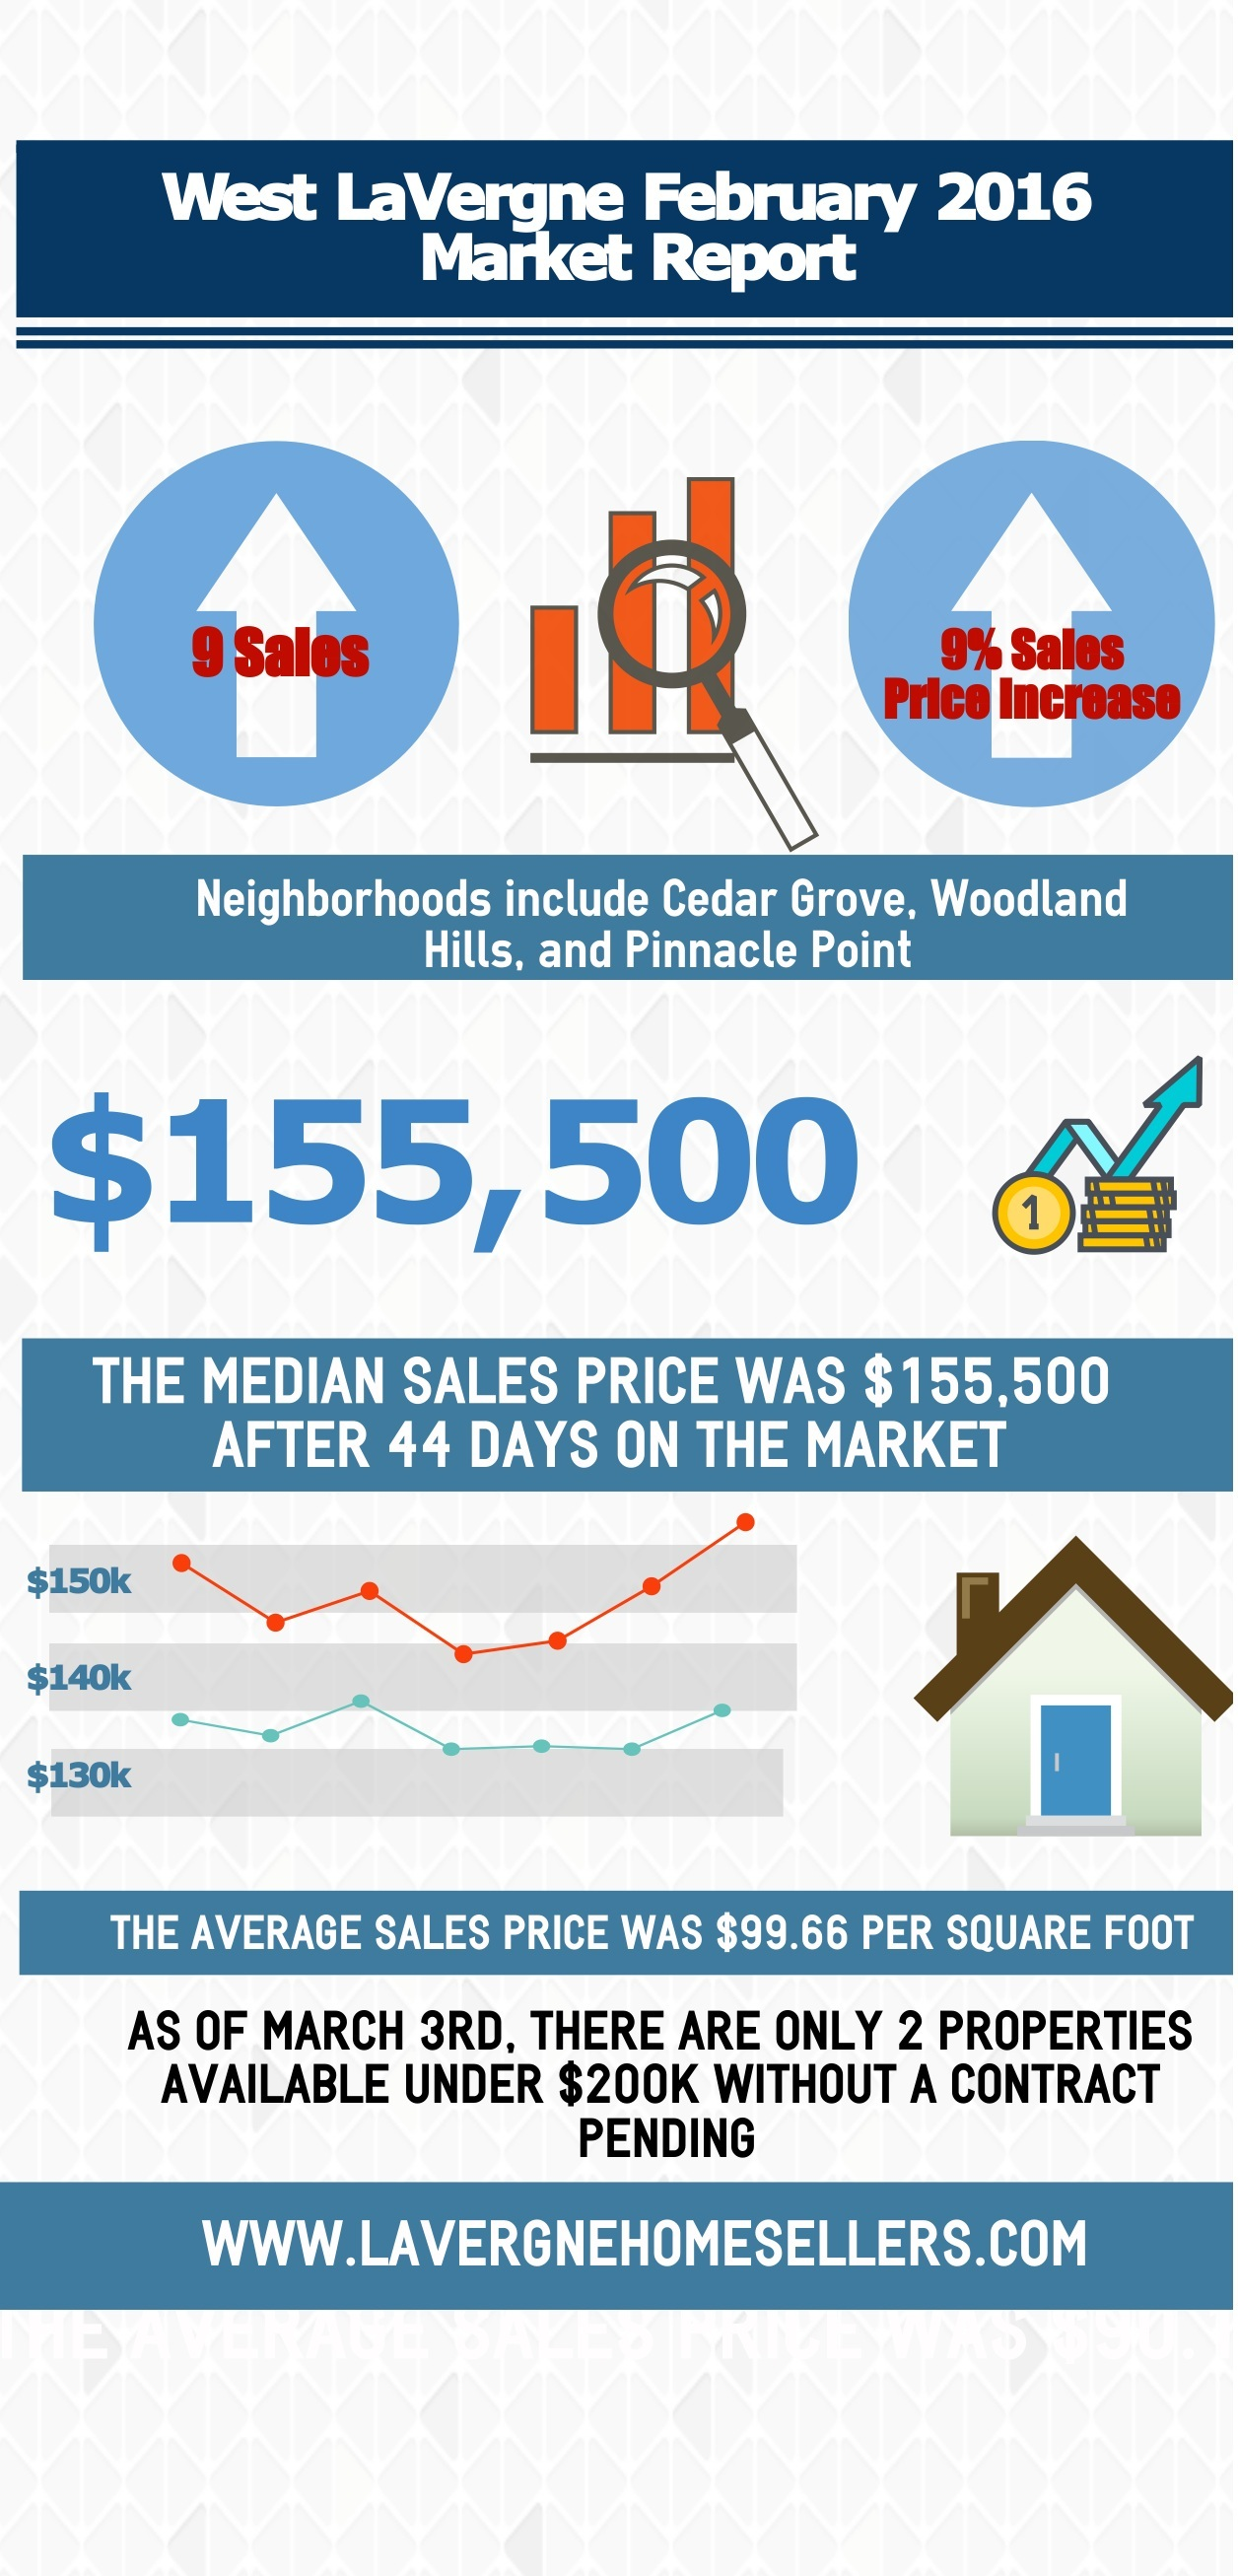 West Lavergne Market Report Feb 2016